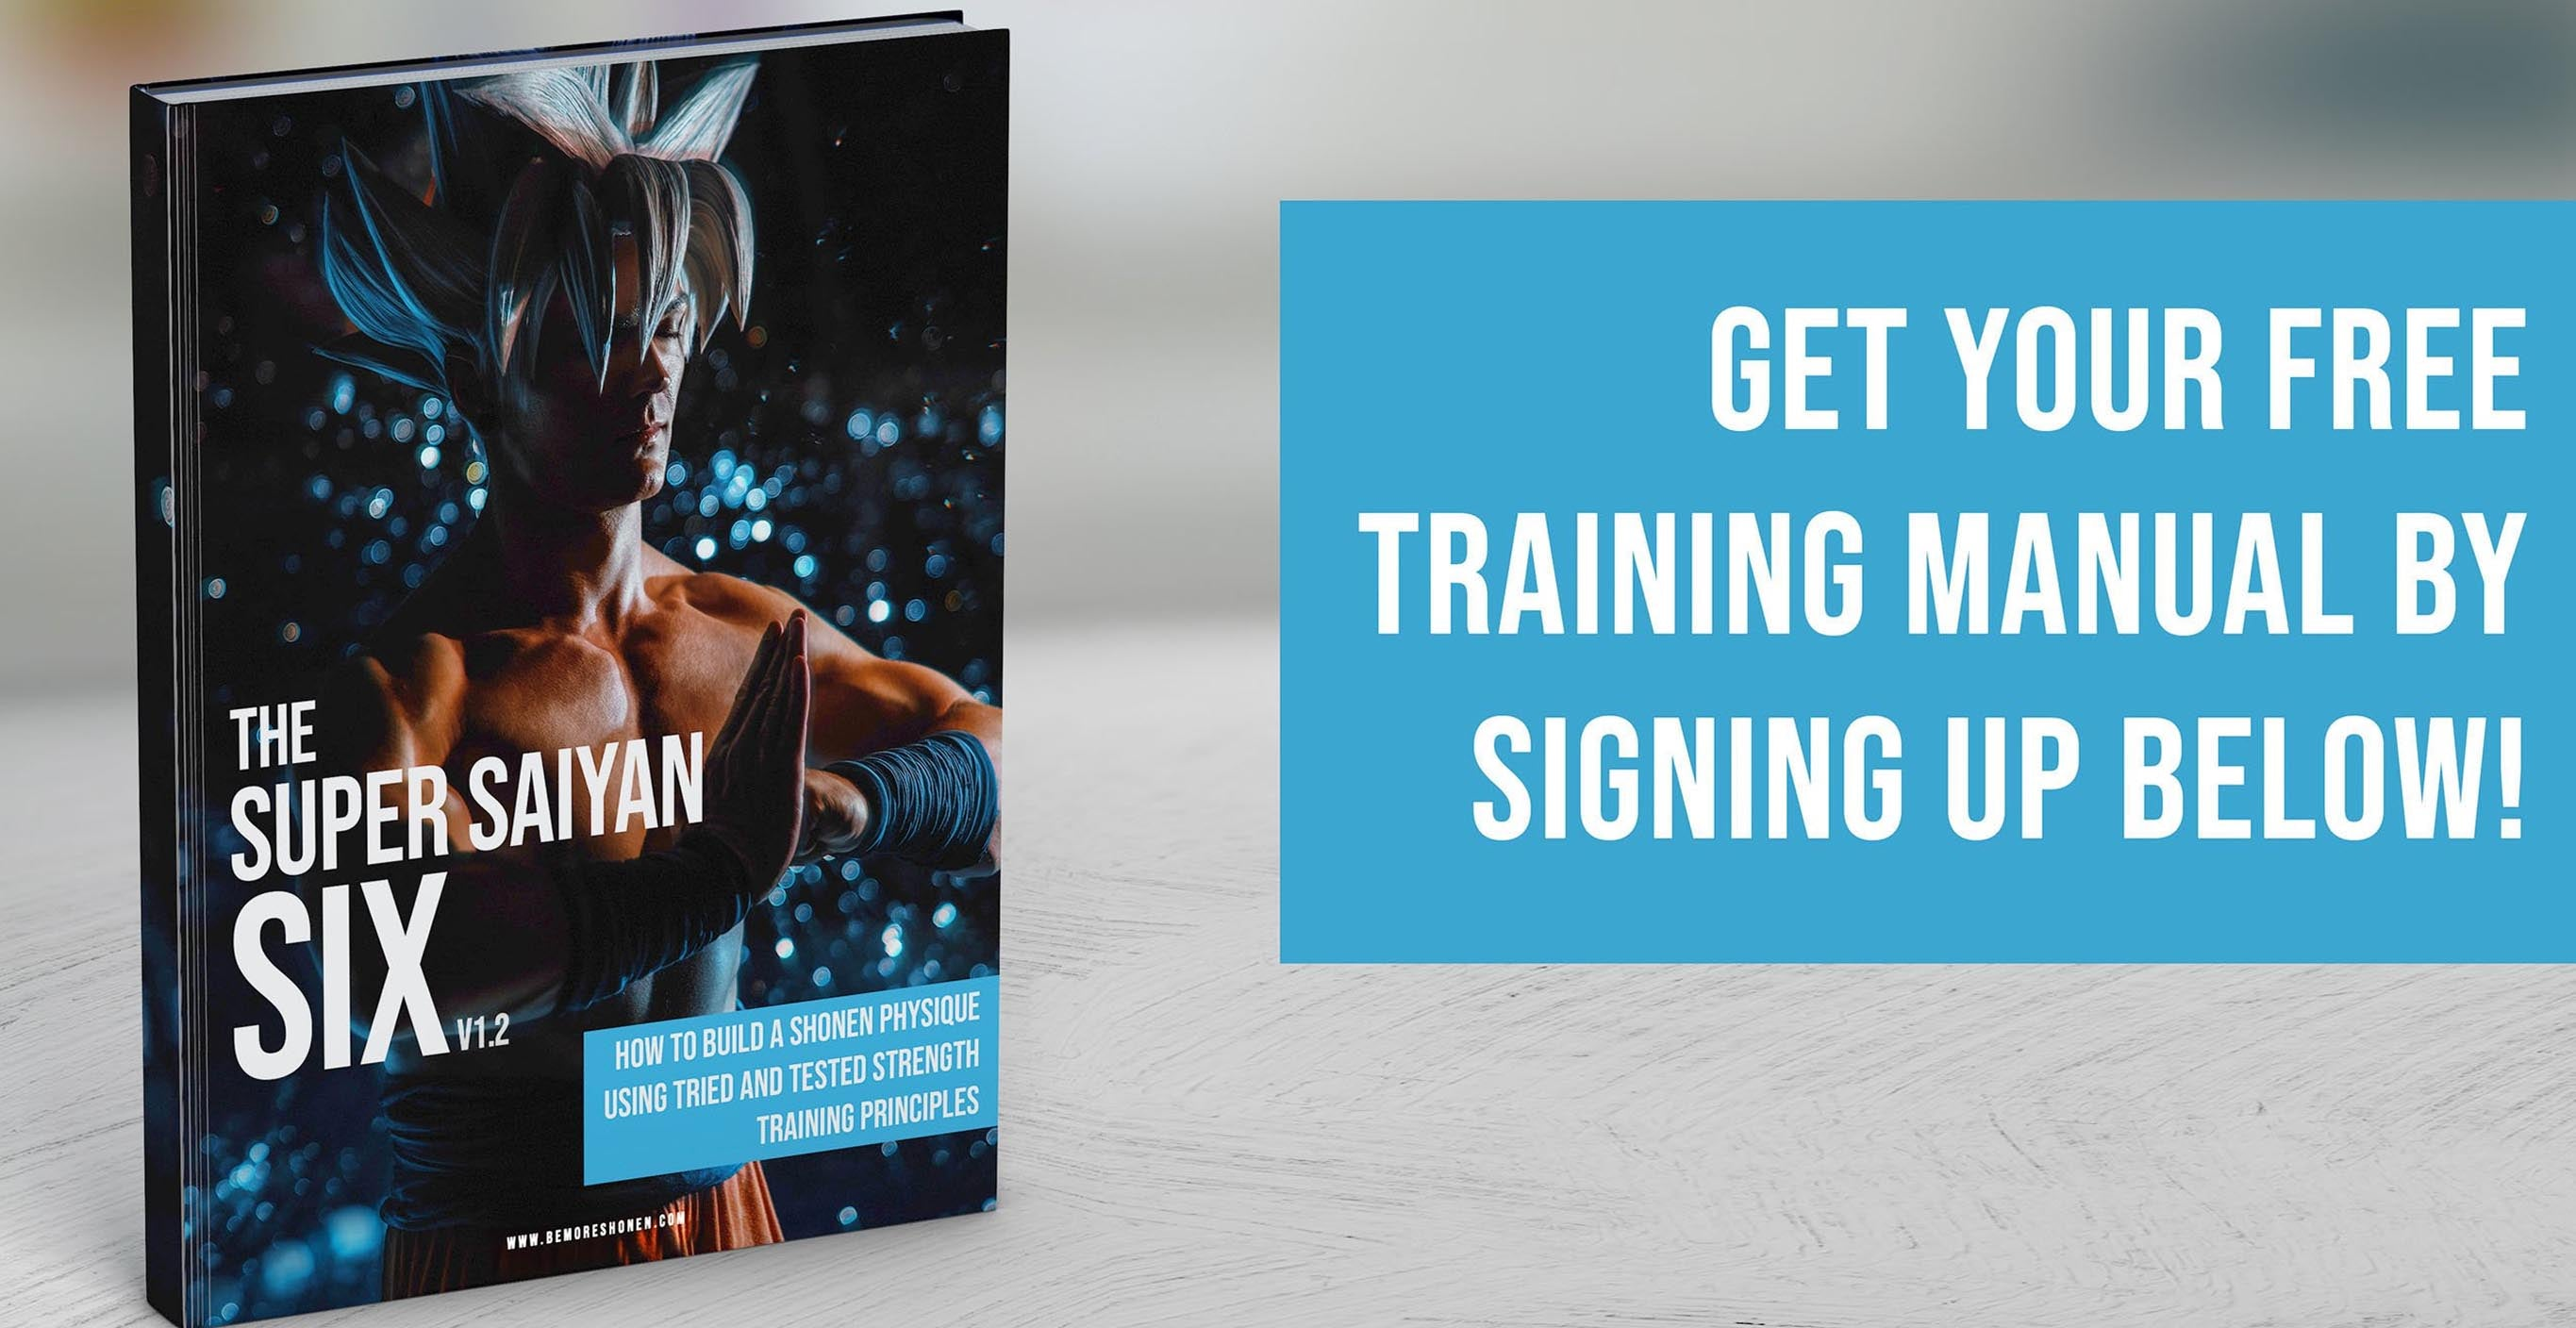 Super Saiyan Six weight training and diet fitness book for anime fans and cosplayers